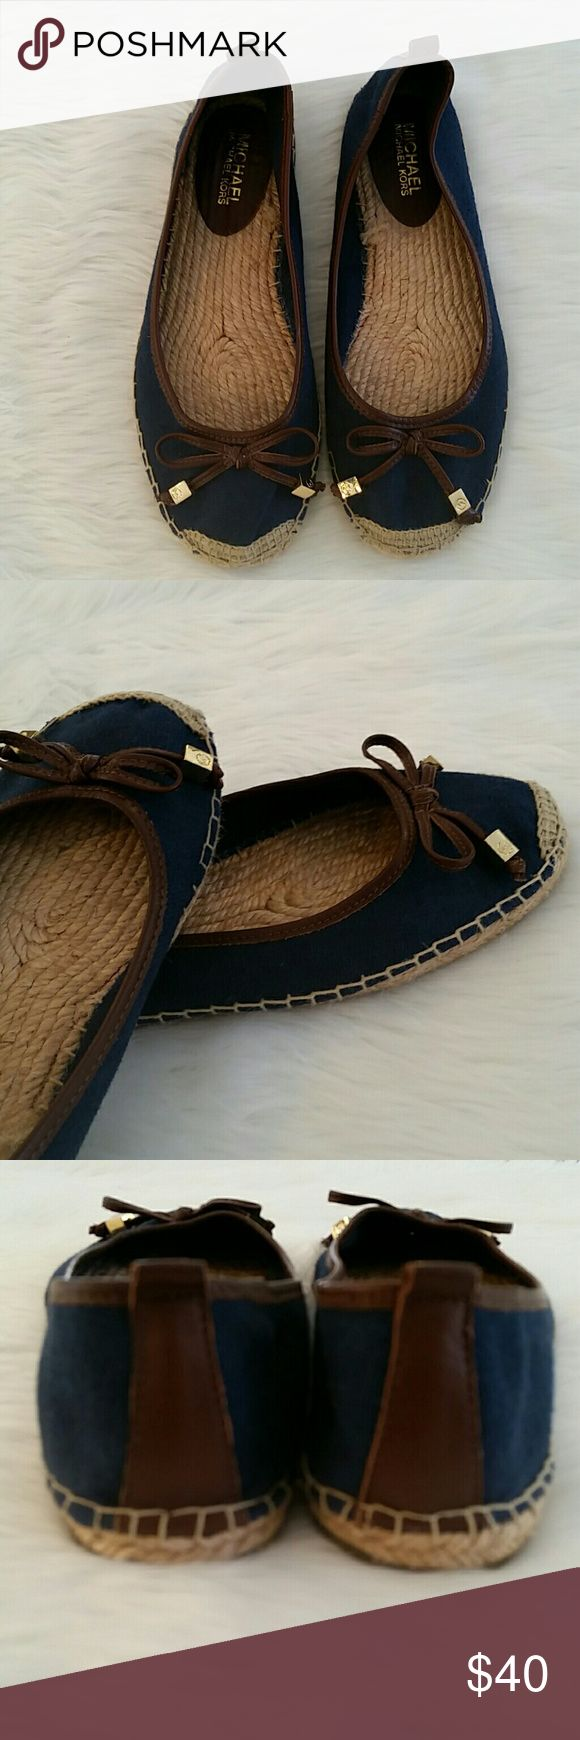 Michael Kors espadrilles Blue canvas Michael Kors espadrilles Great shoes for Spring Blue canvas with leather trim Leather tassels with Michael Kors logo boxes Only worn a couple times, in excellent condition. Size 8 Michael Kors Shoes Espadrilles